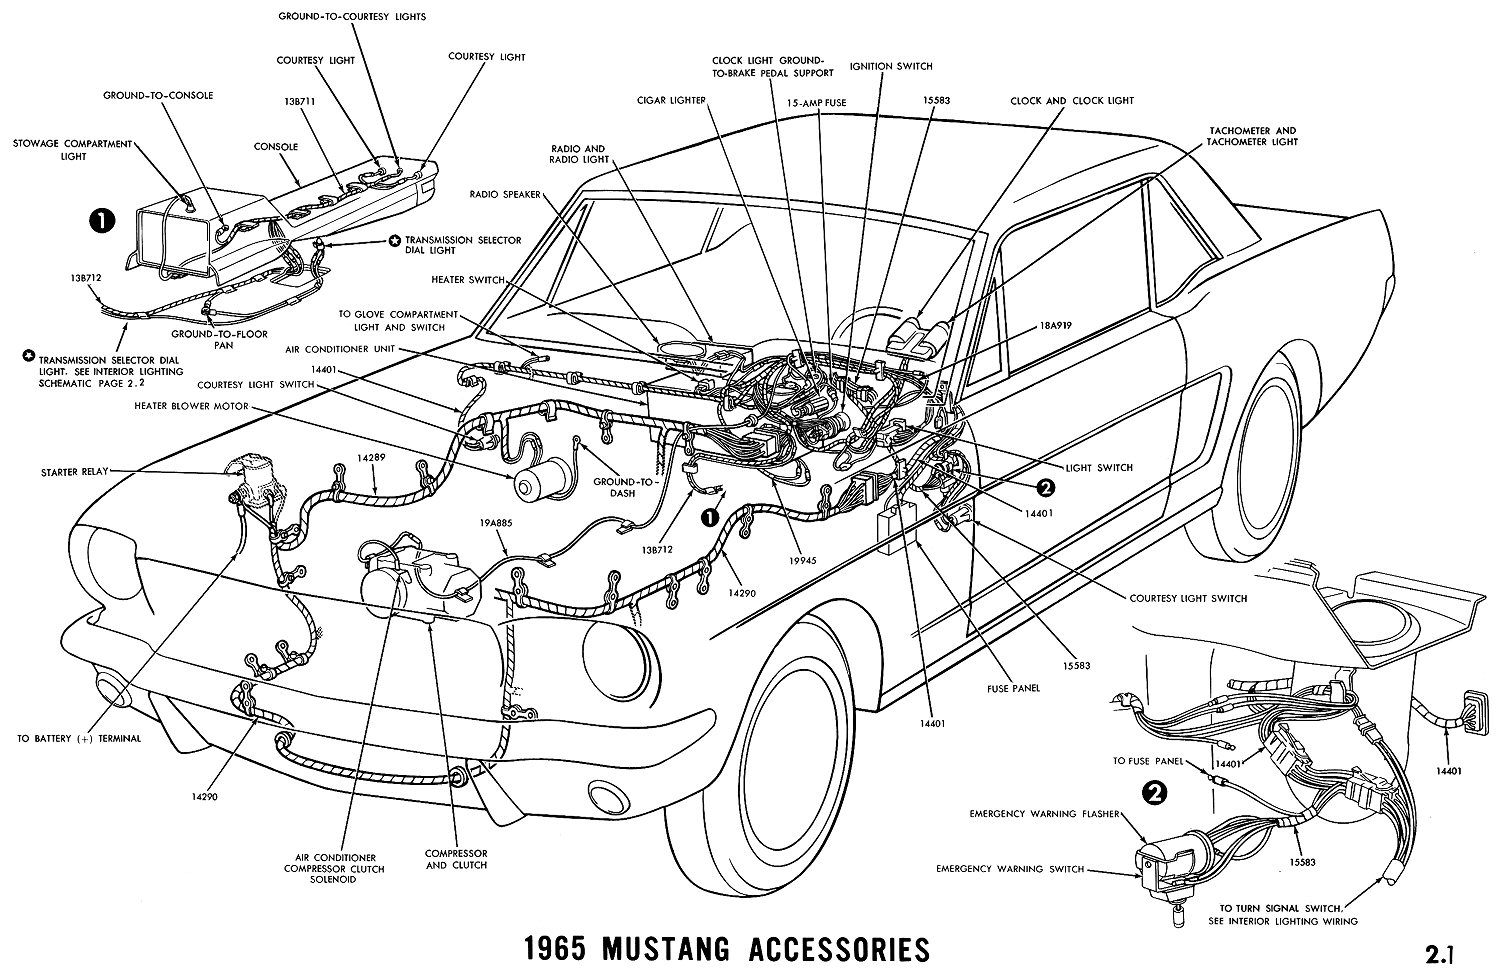 1966 Mustang Radio Wiring Diagram - Database